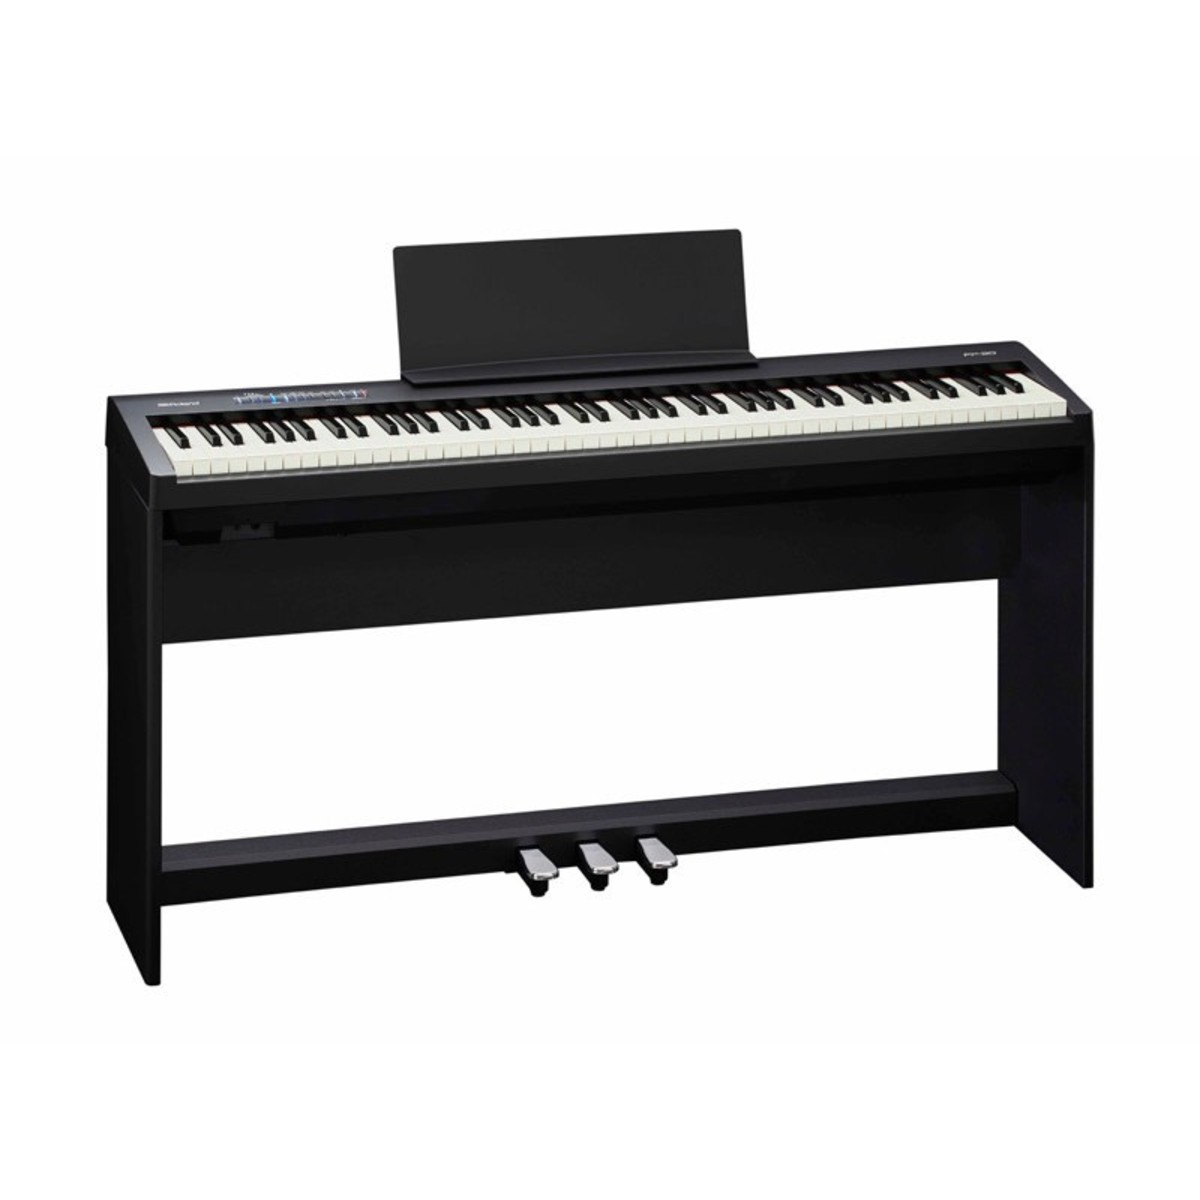 roland fp 30 digital piano with stand and pedals black at. Black Bedroom Furniture Sets. Home Design Ideas